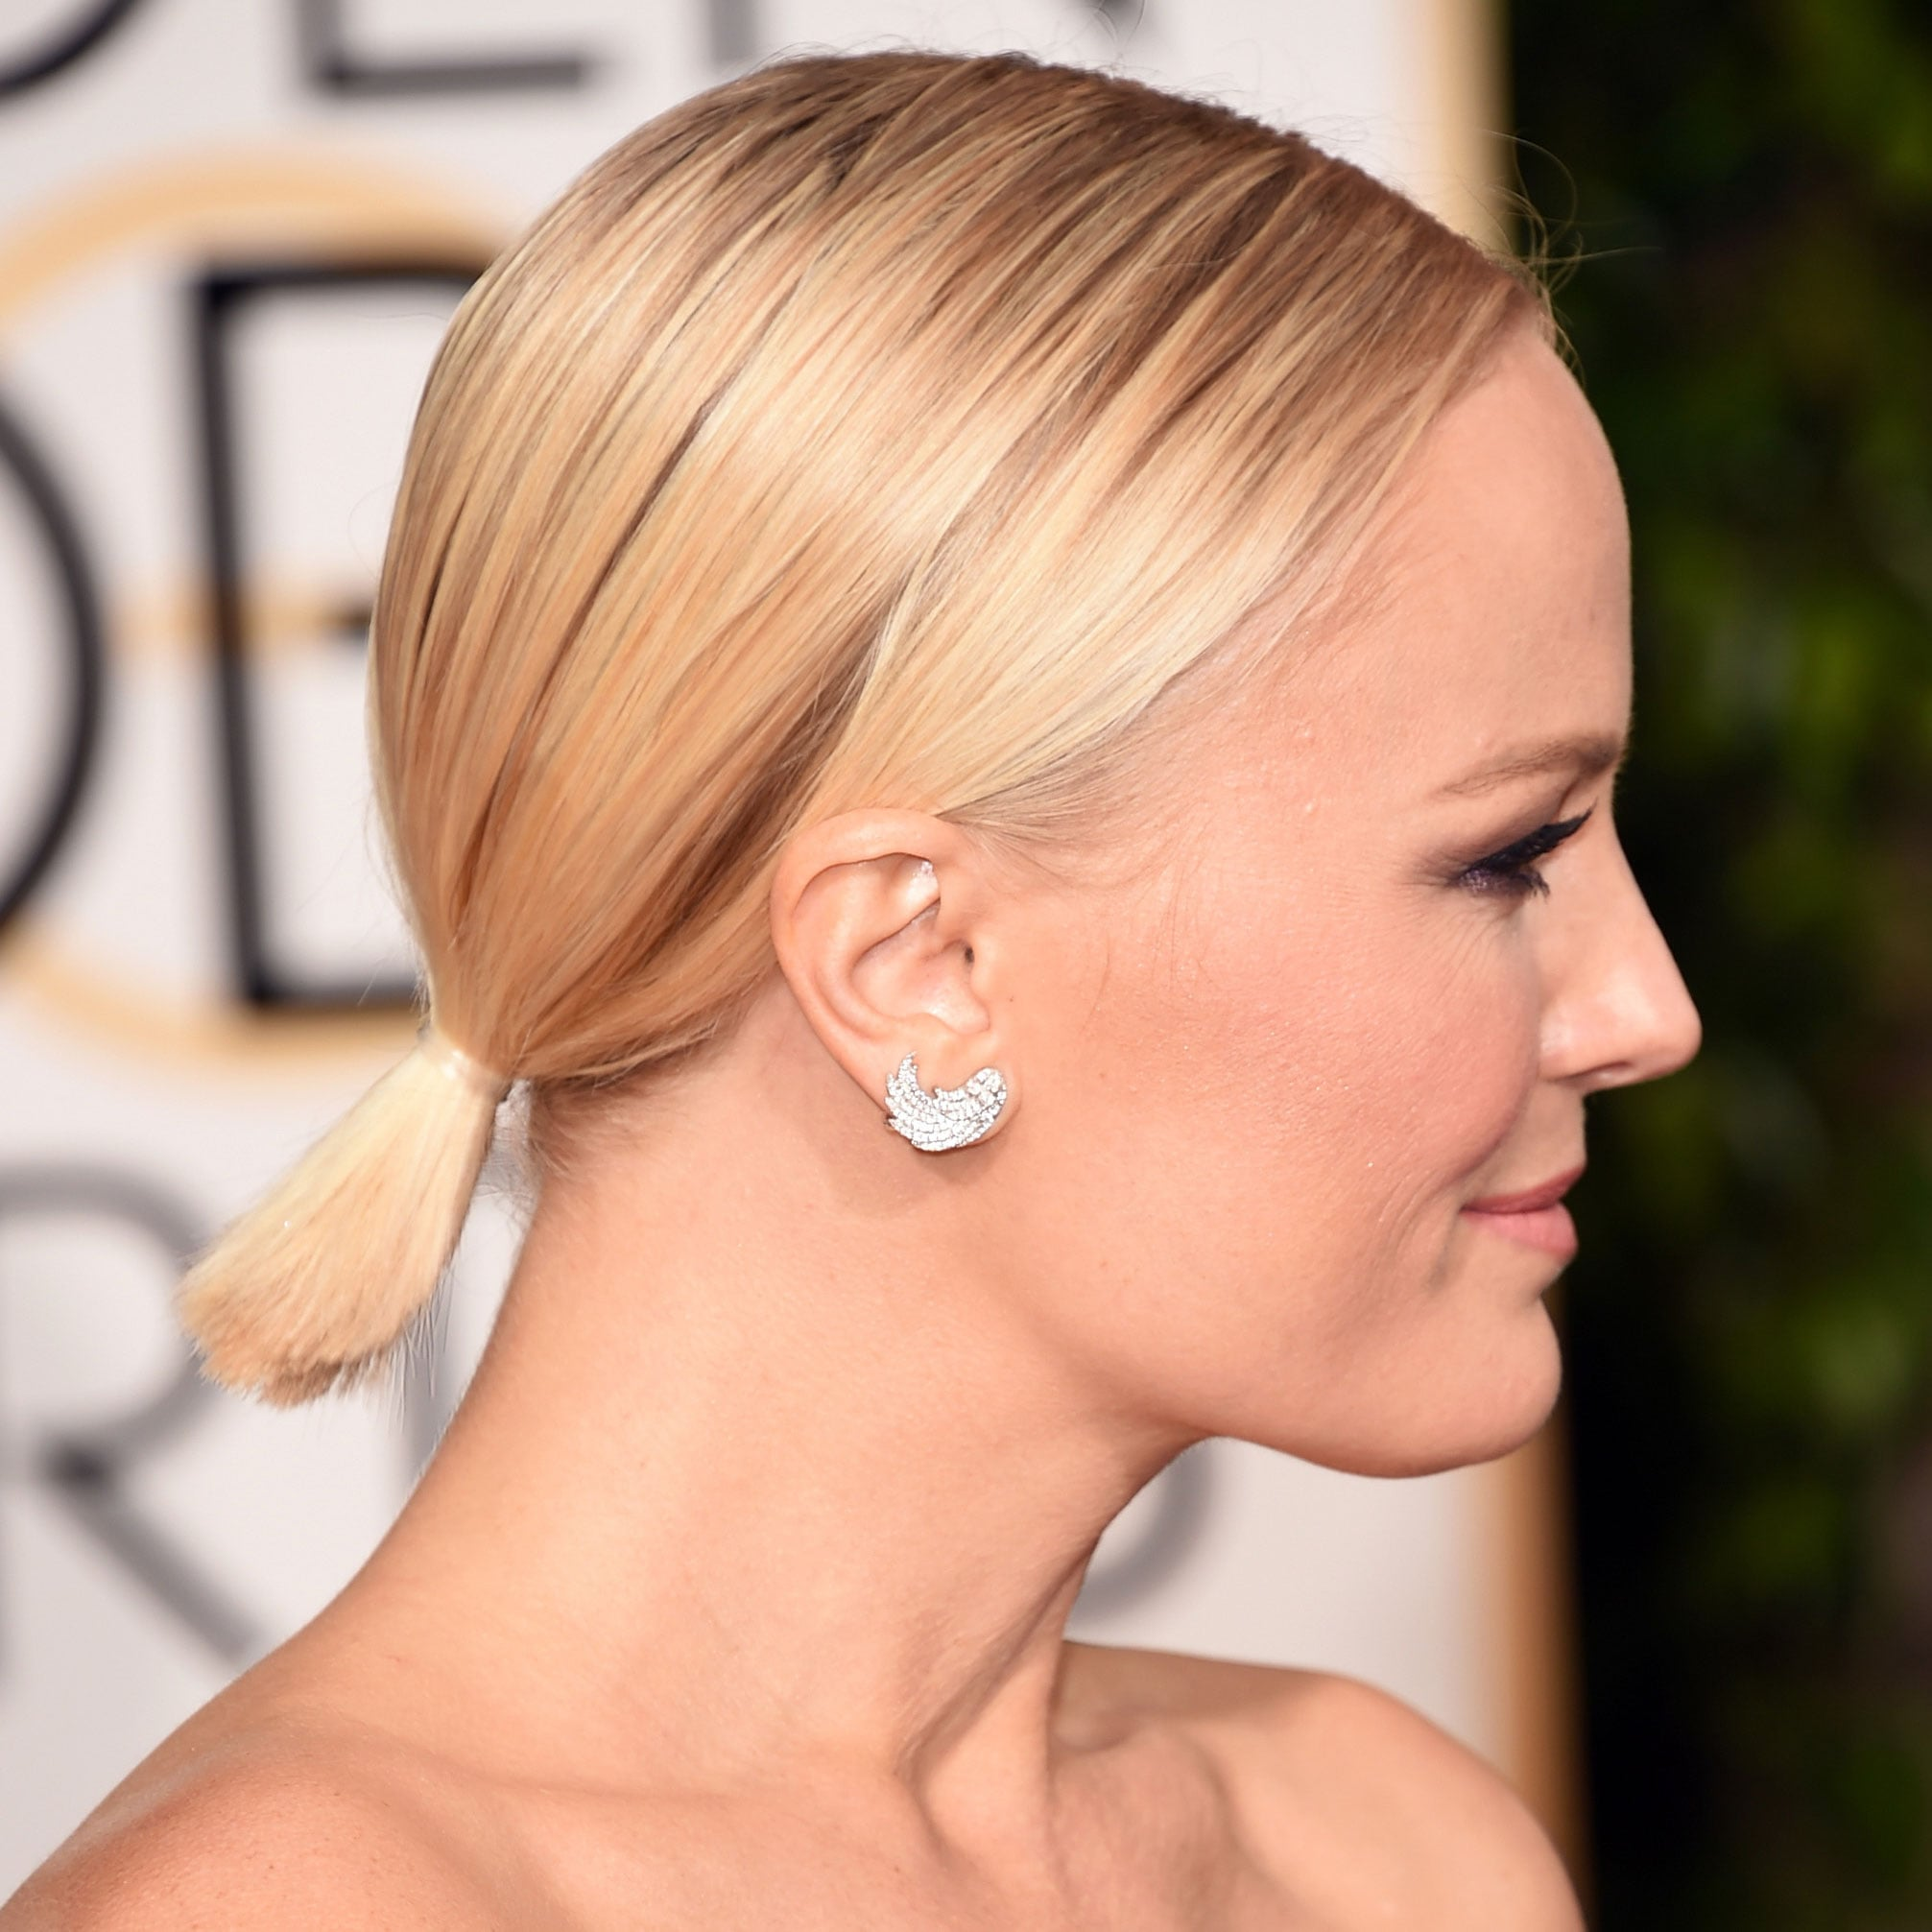 celebrity ponytail hair styles golden globes 2016 | popsugar